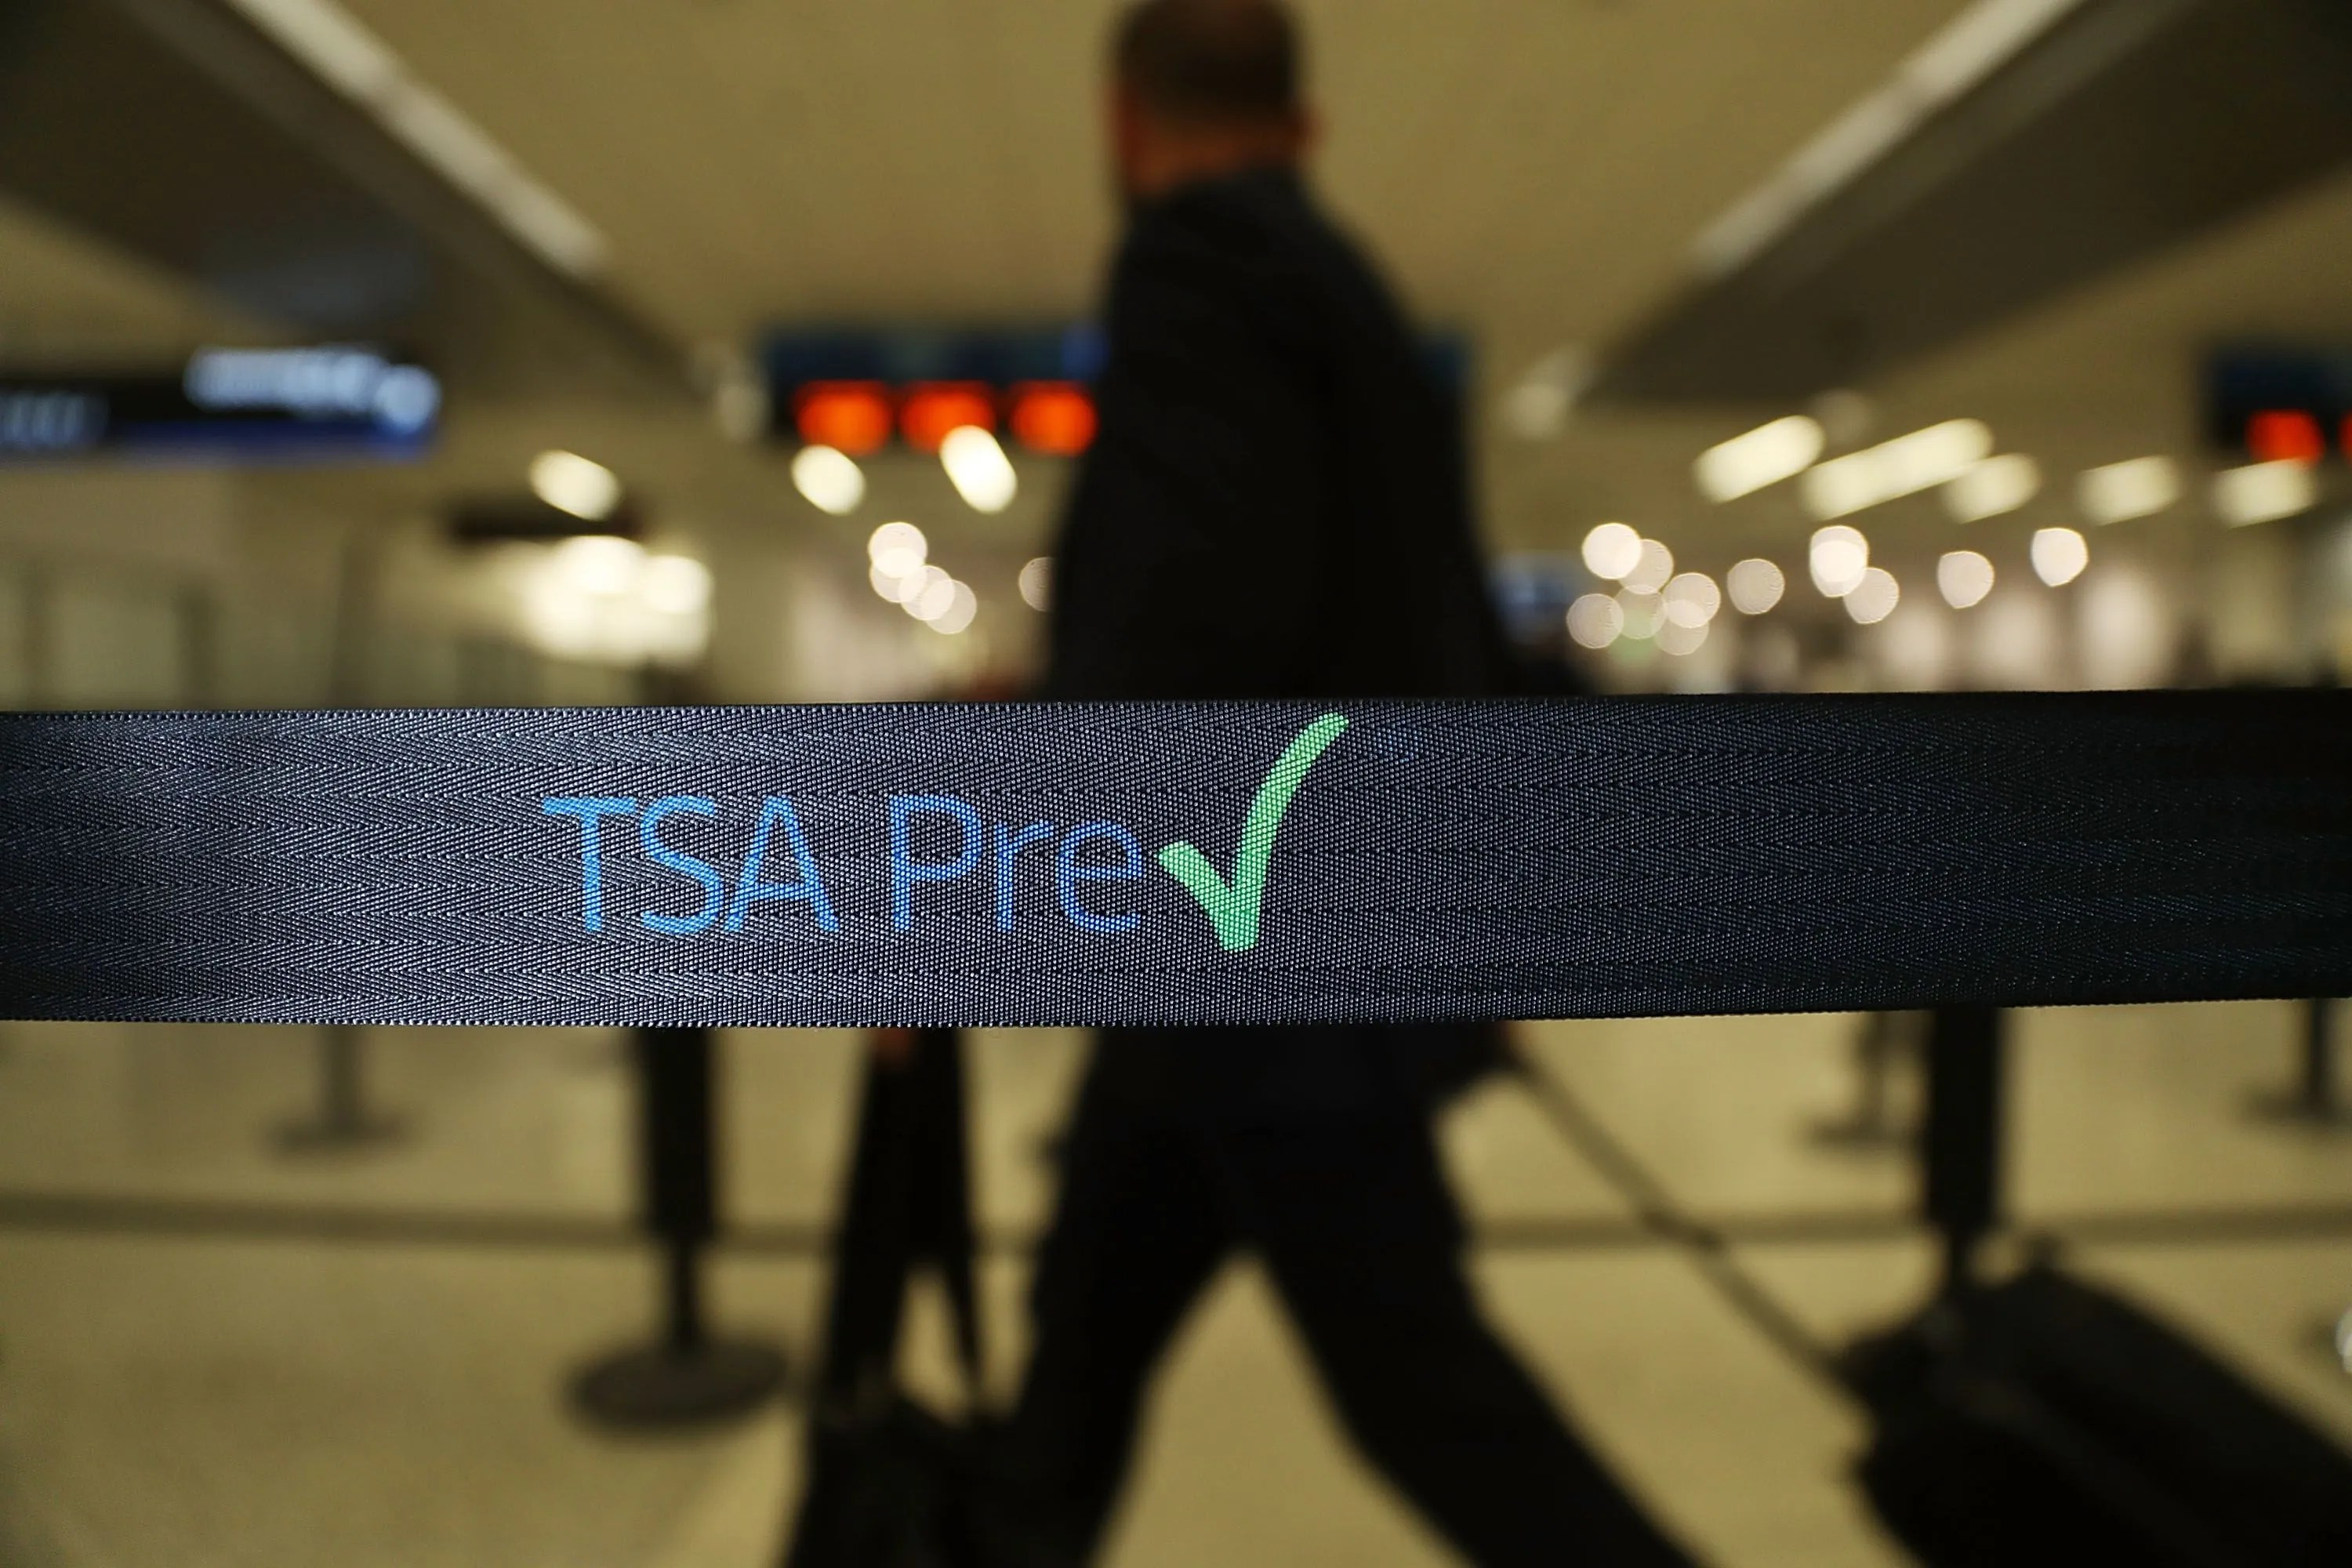 Asheville Regional Airport will likely have a TSA preclearance line in early 2019. The preclearance program allows travelers to go through due diligence which significantly speeds up security checks at airports.